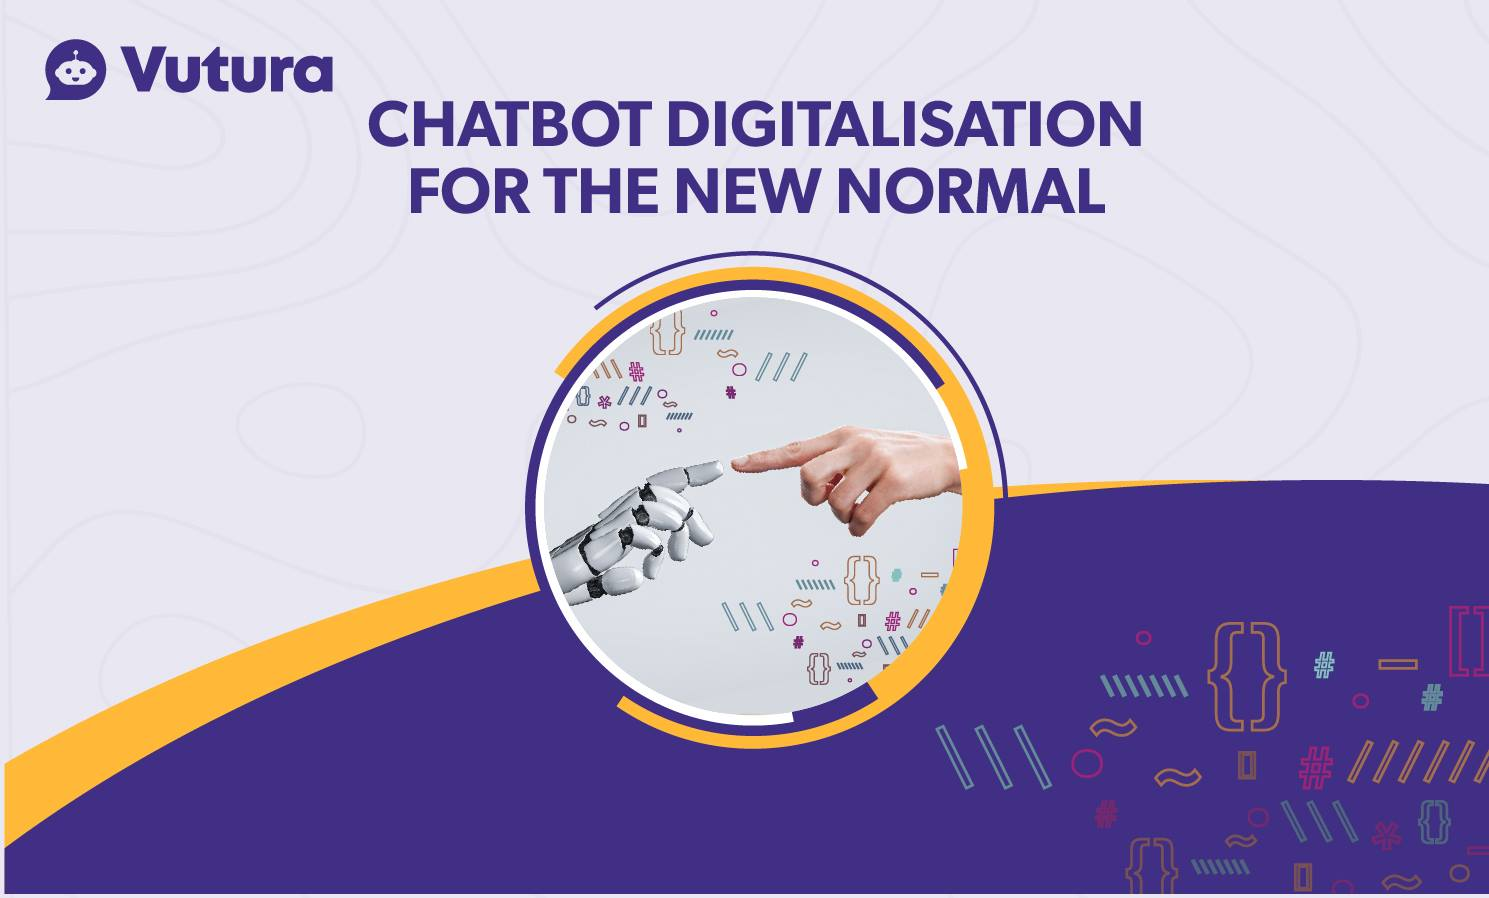 White paper on chatbot digitalisation for the new normal